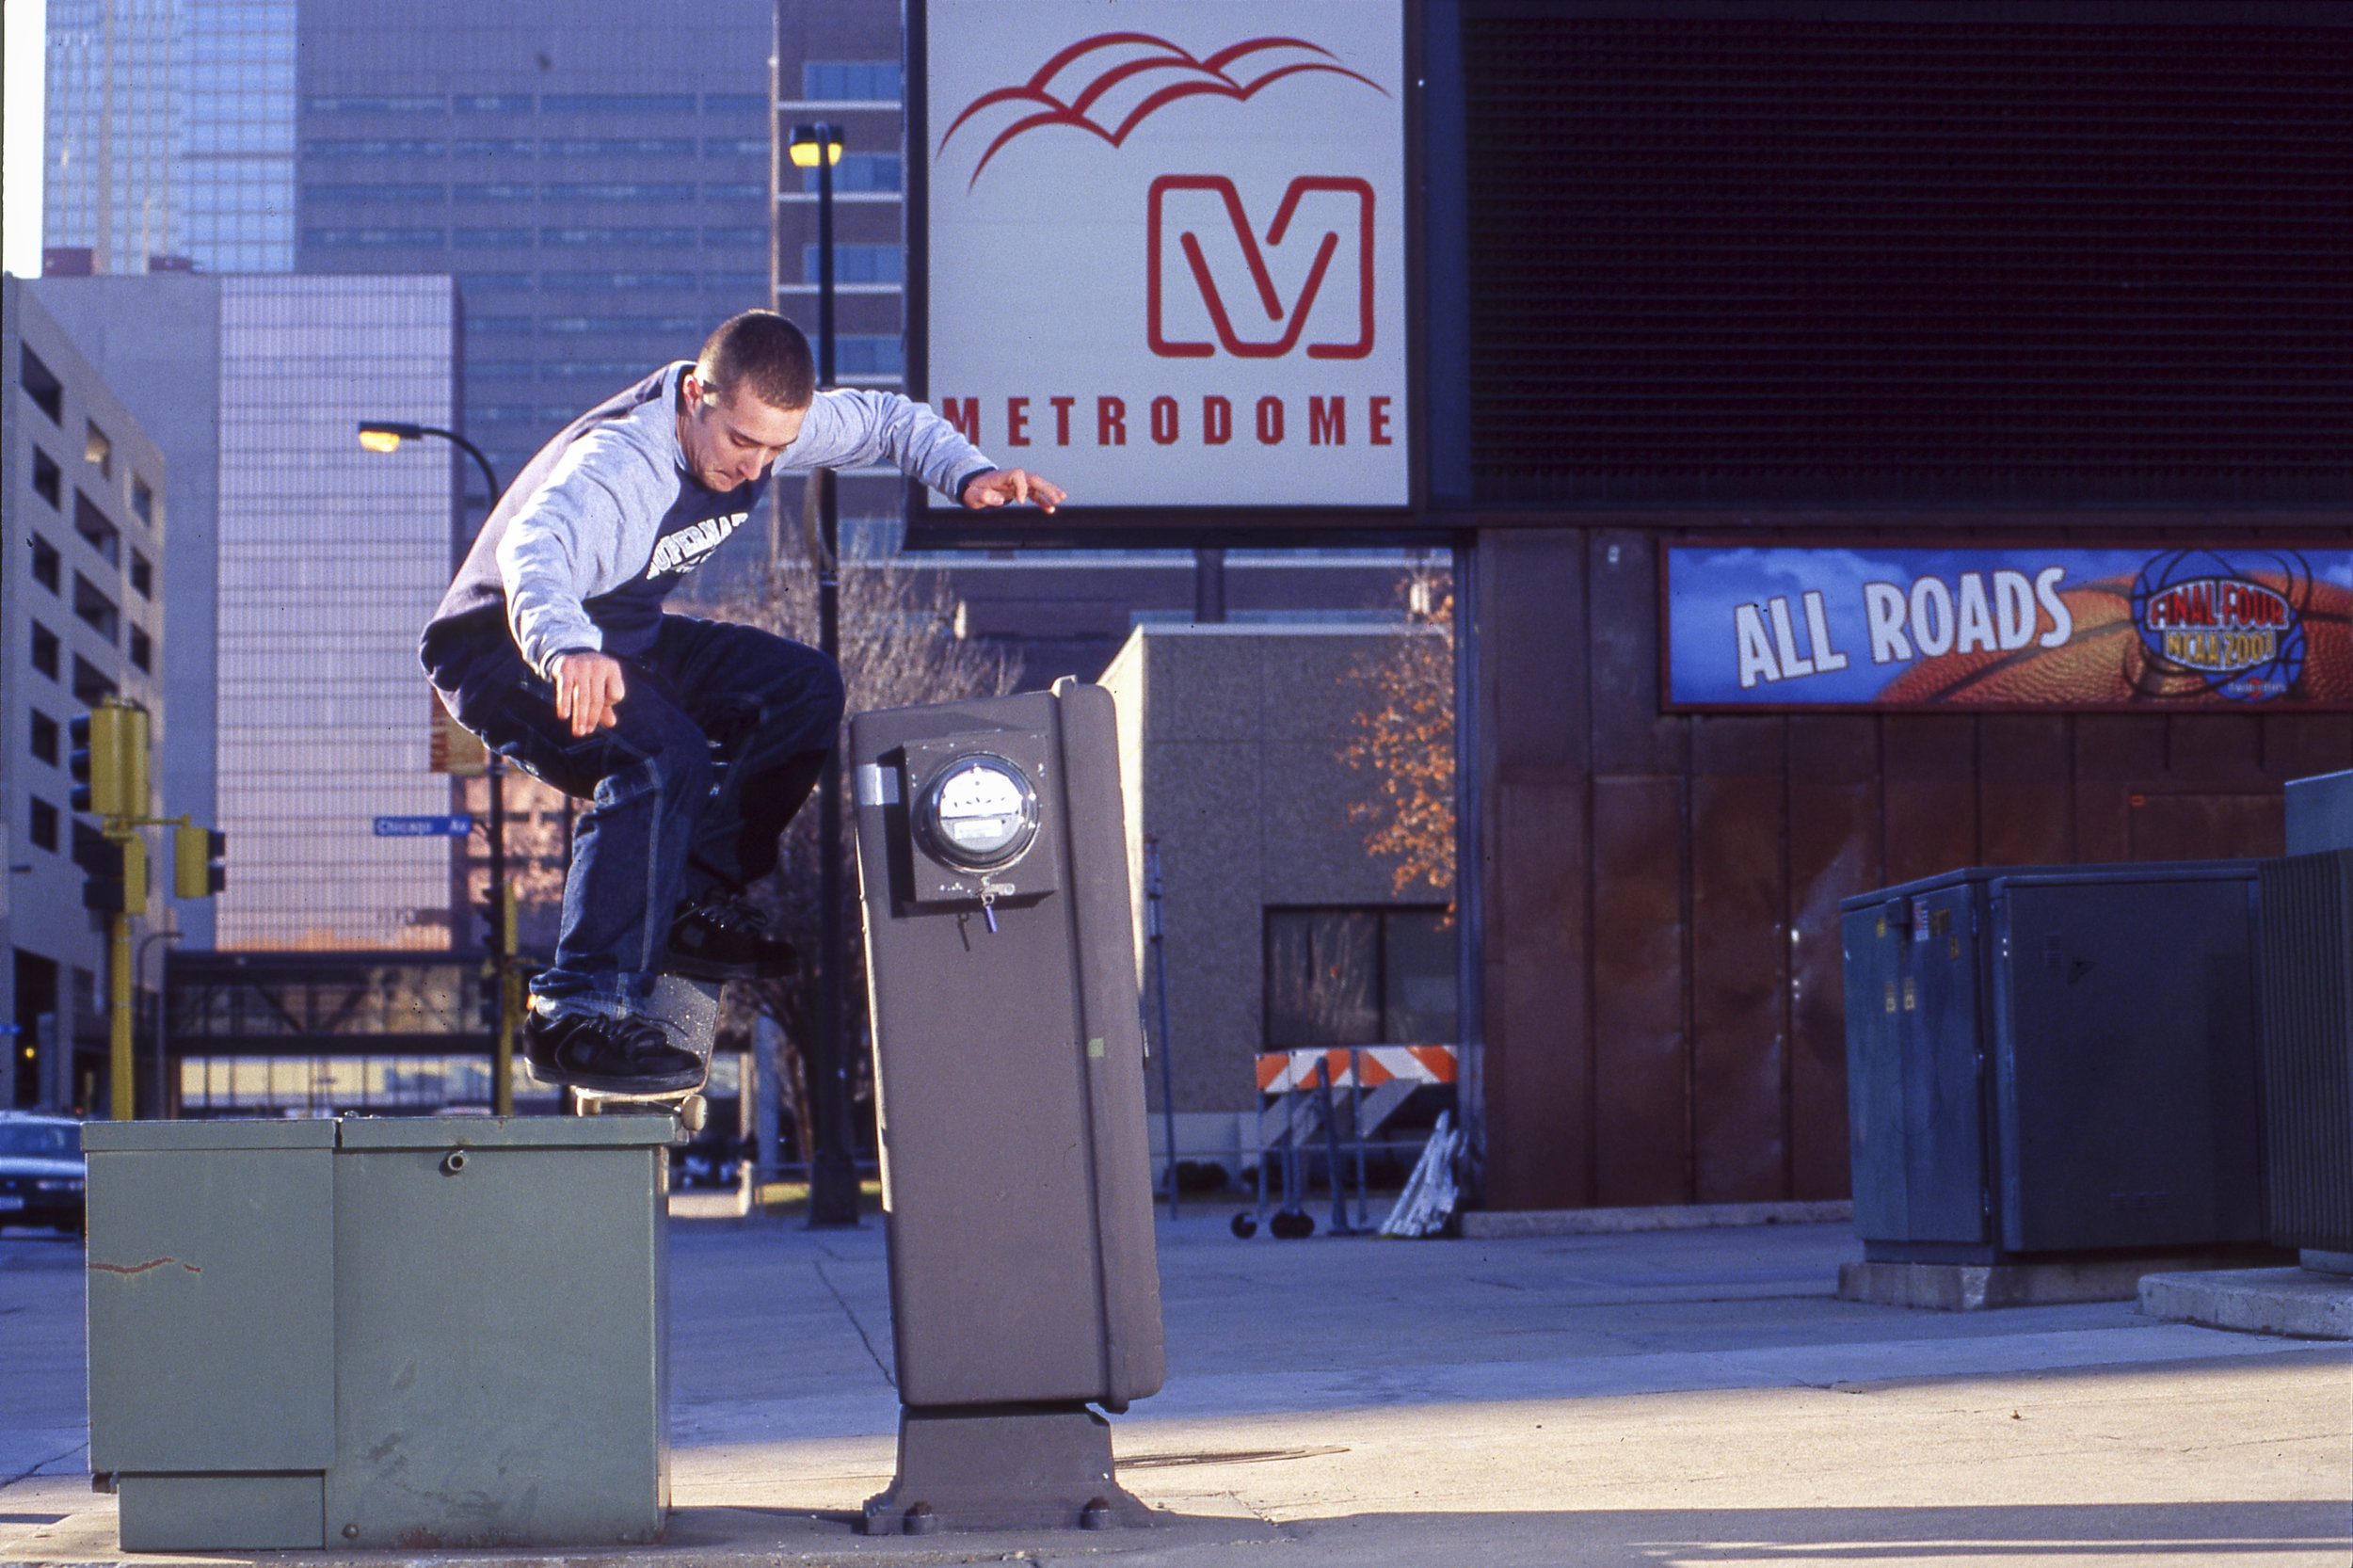 Not sure if anyone skated this spot before or after this went down. Elijah Collard backside nosegrind.